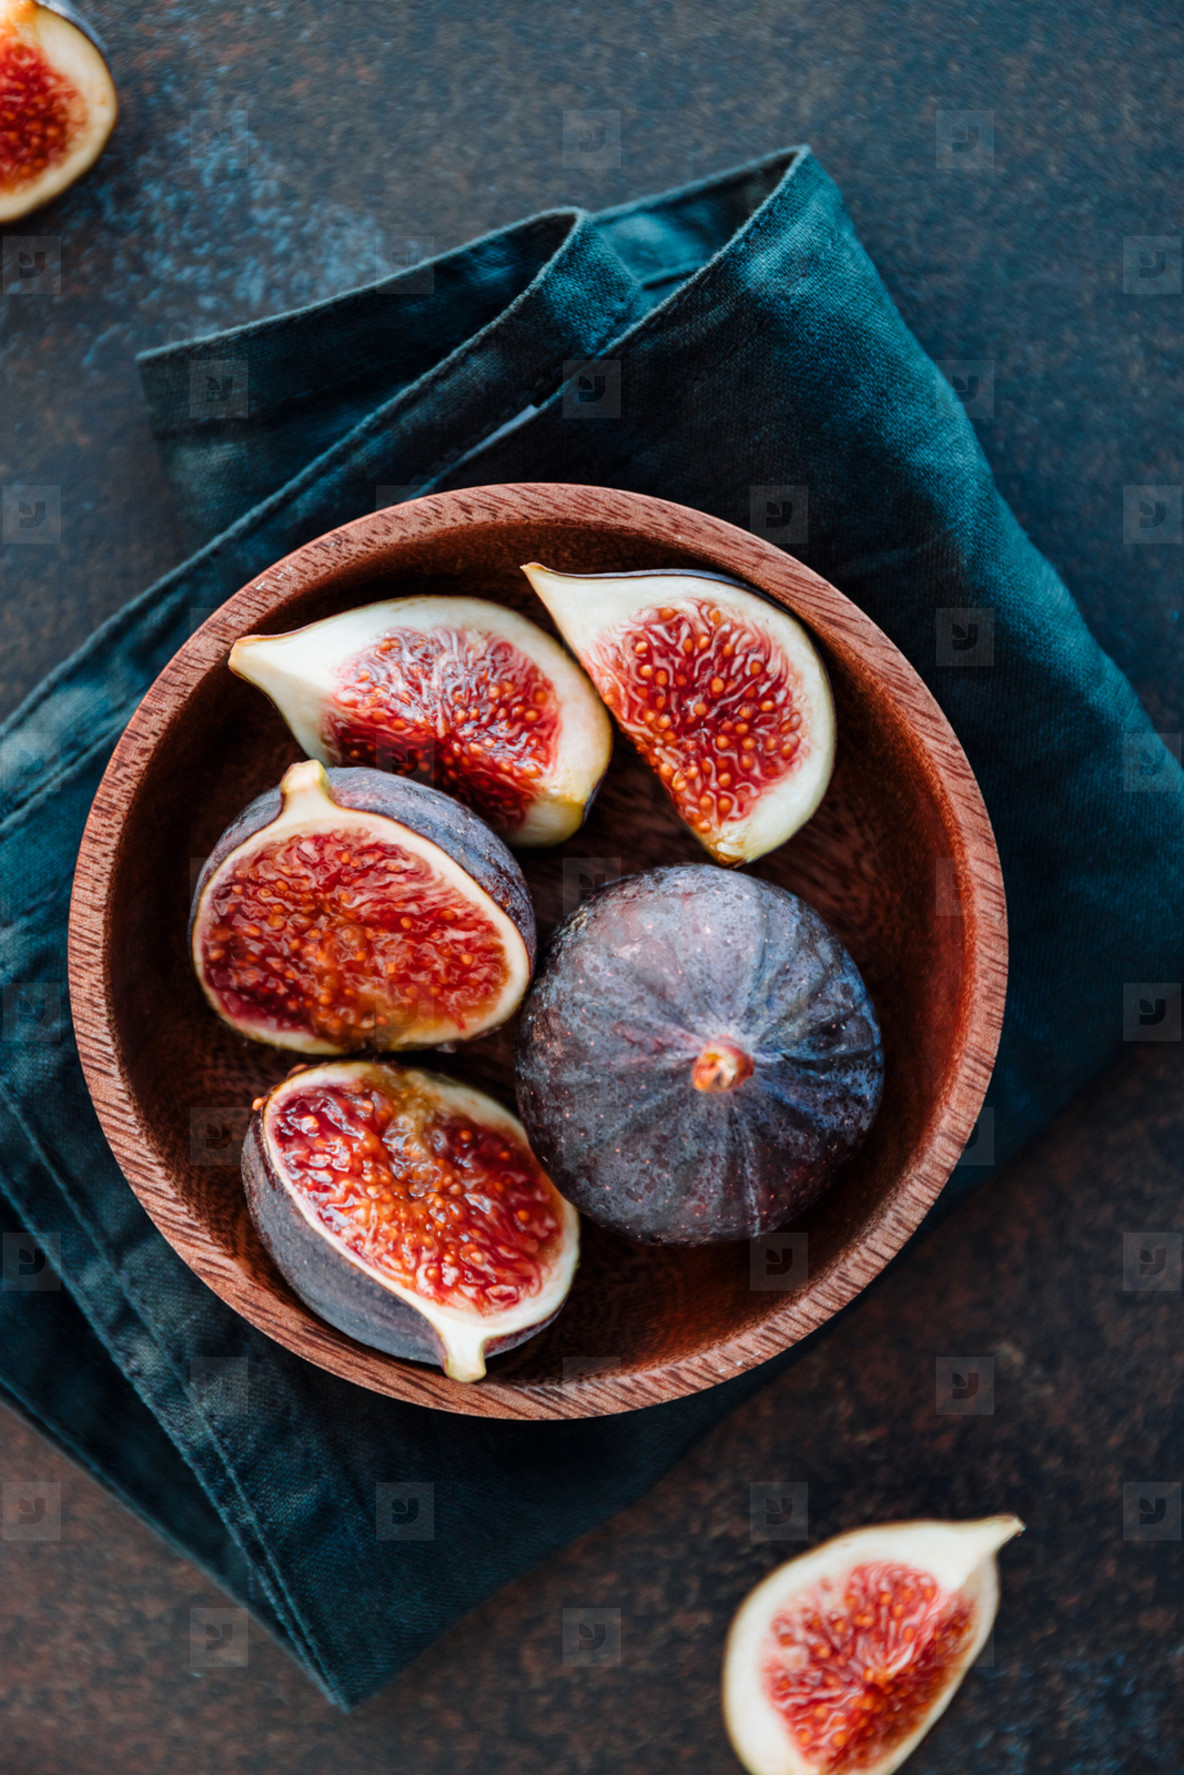 Top view of ripe quartes figs in a wooden small bowl on a table